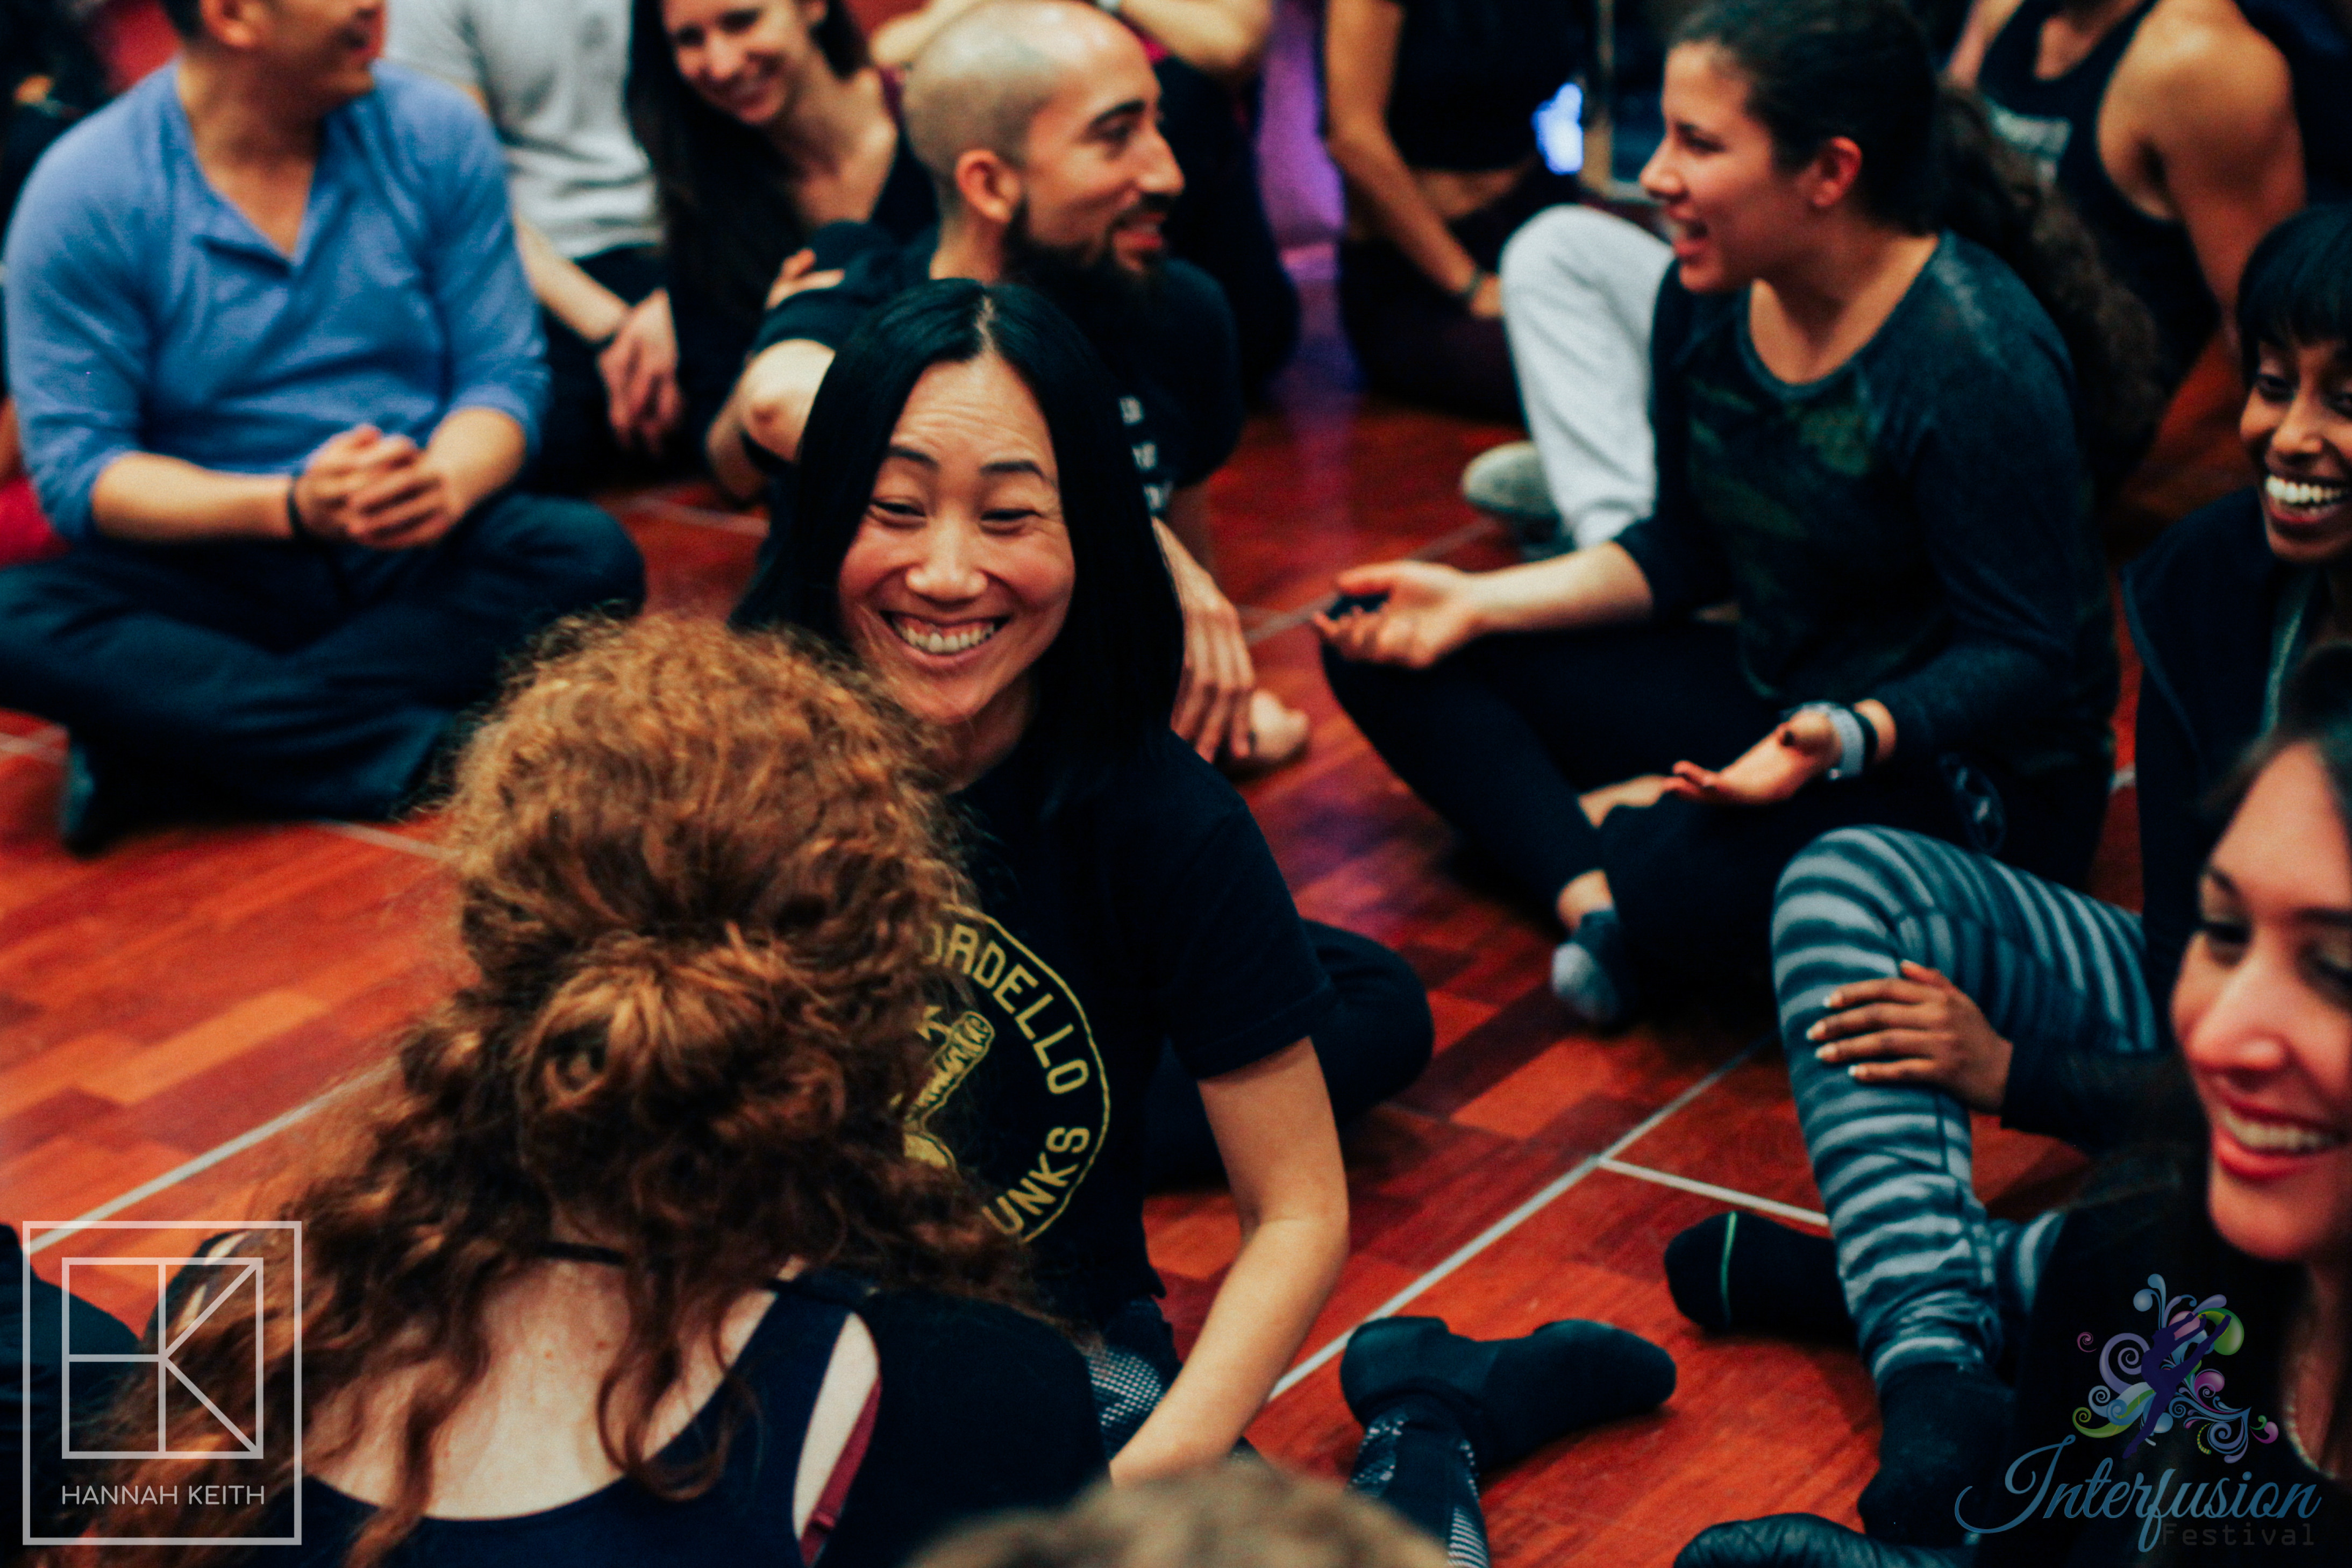 Intimacy in Community: Connection Games & Potluck